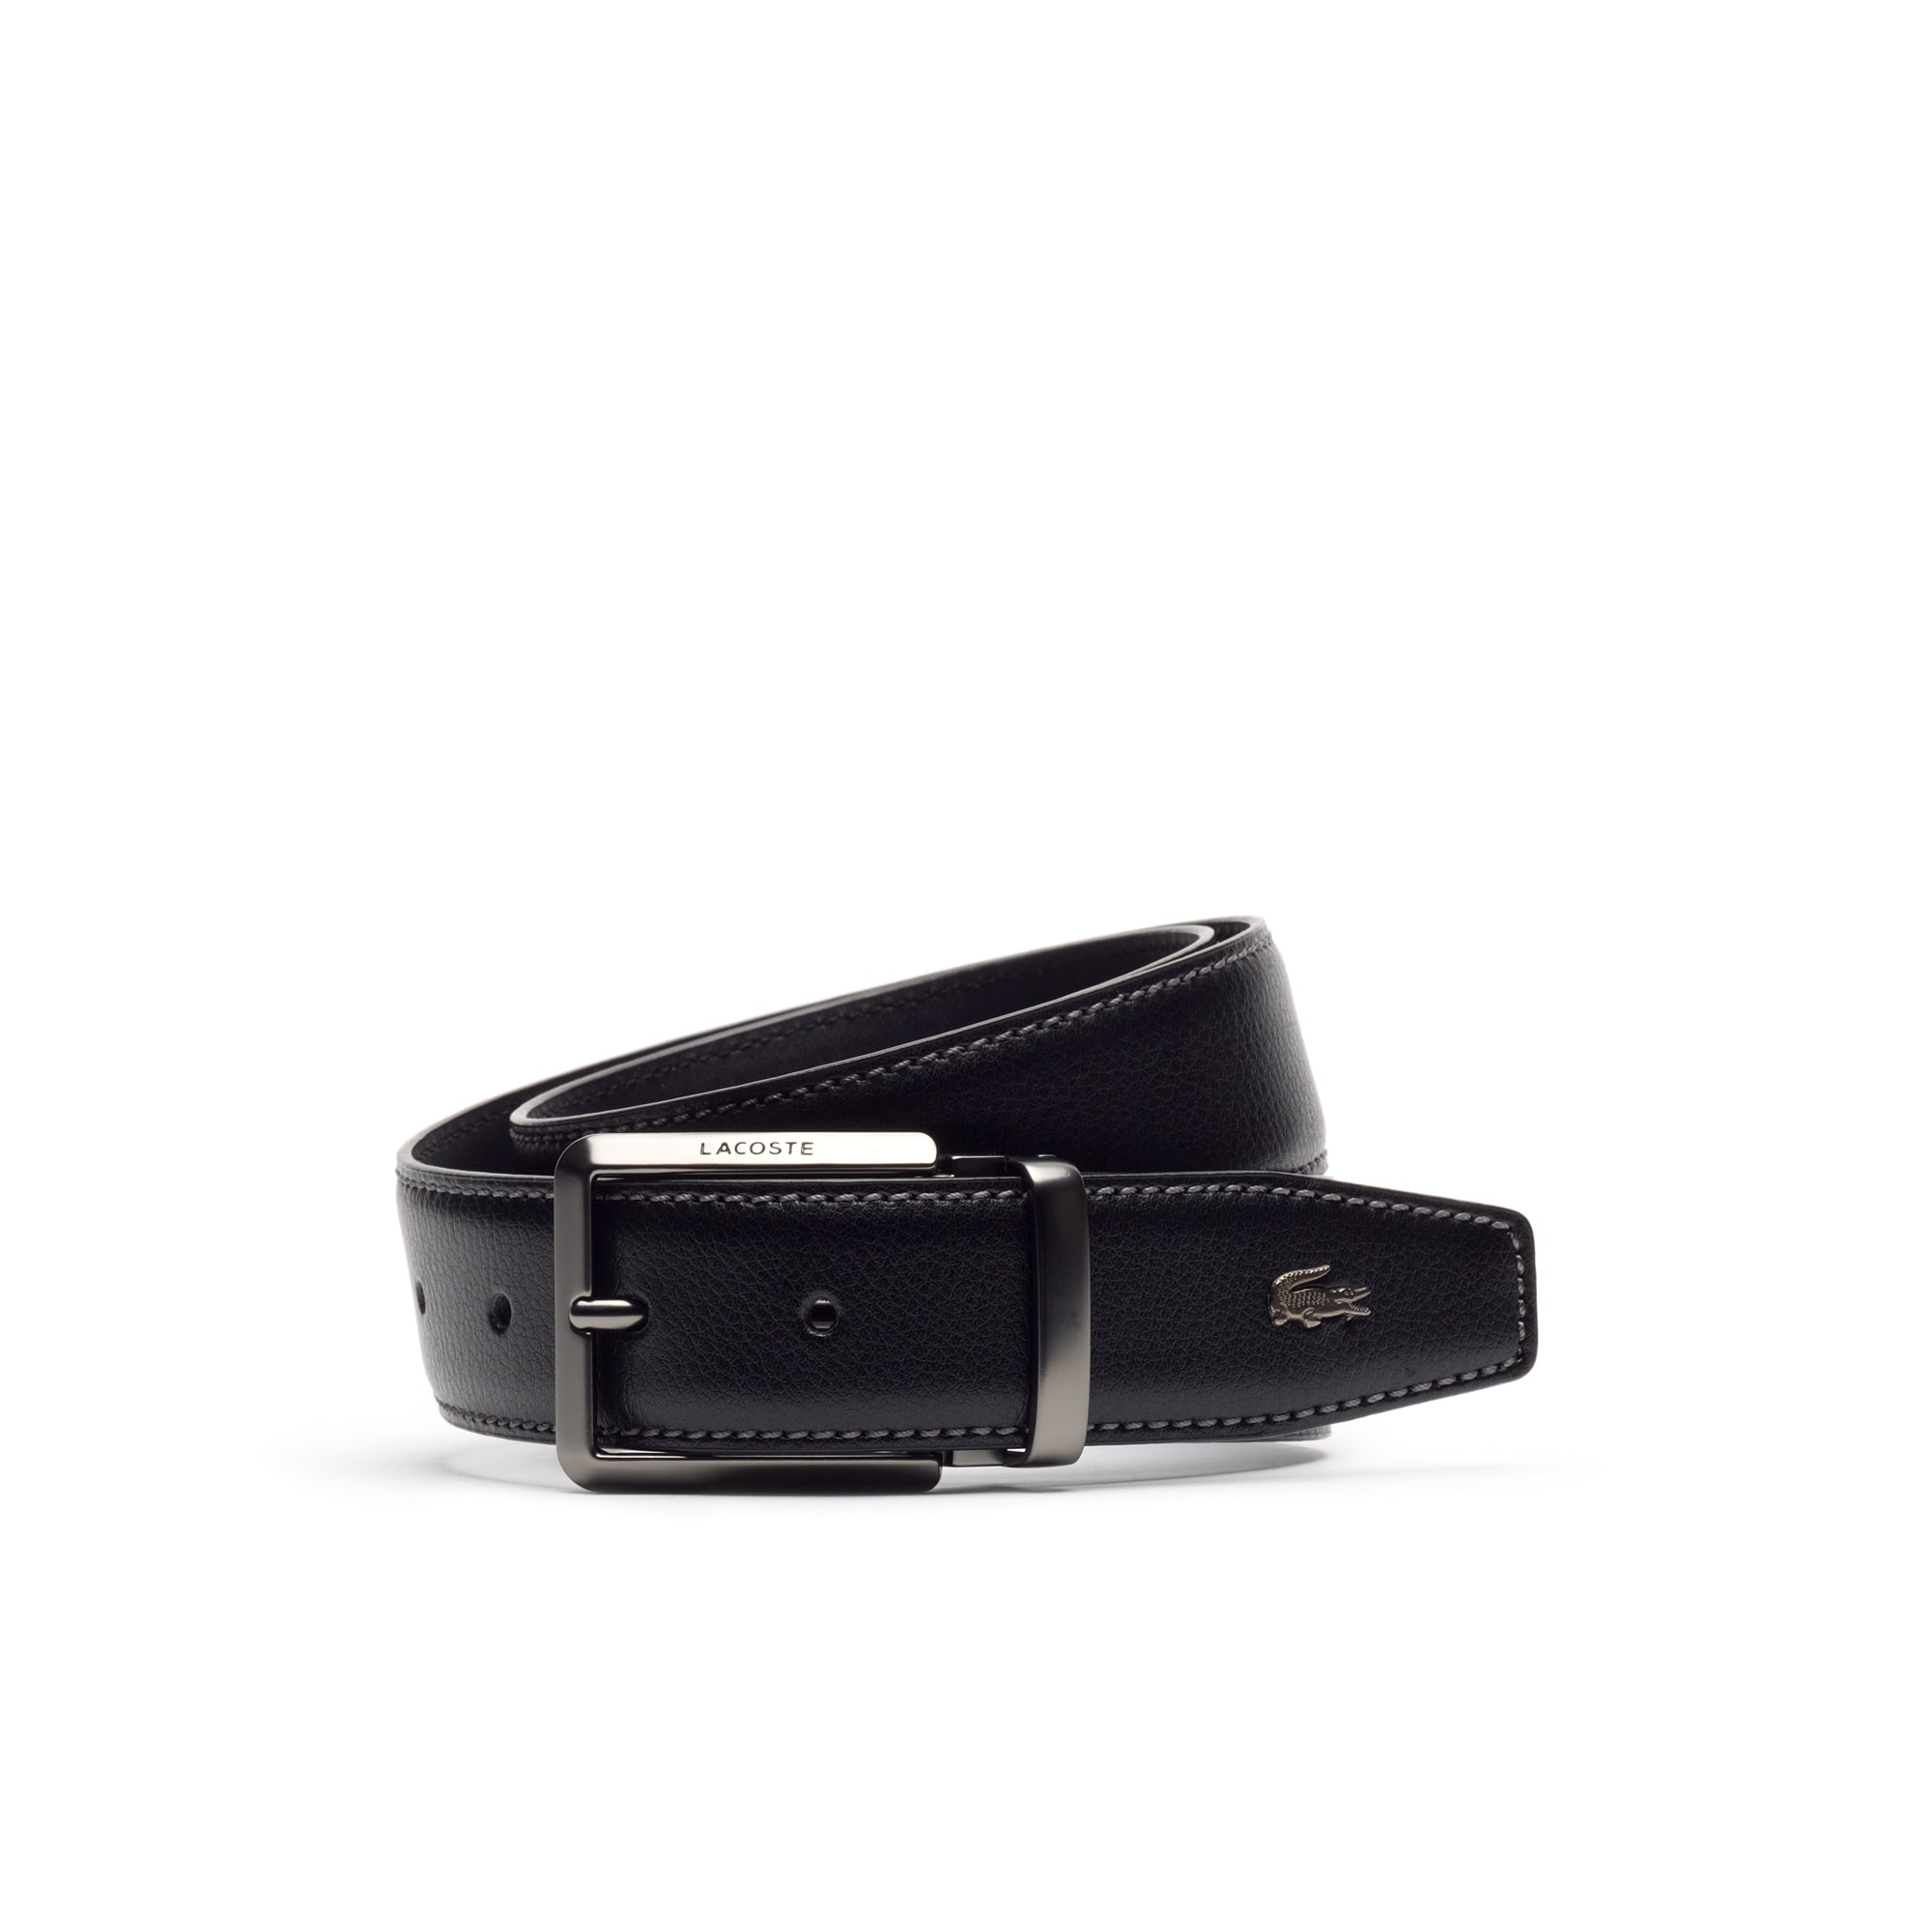 MEN'S STITCH EDGED BELT